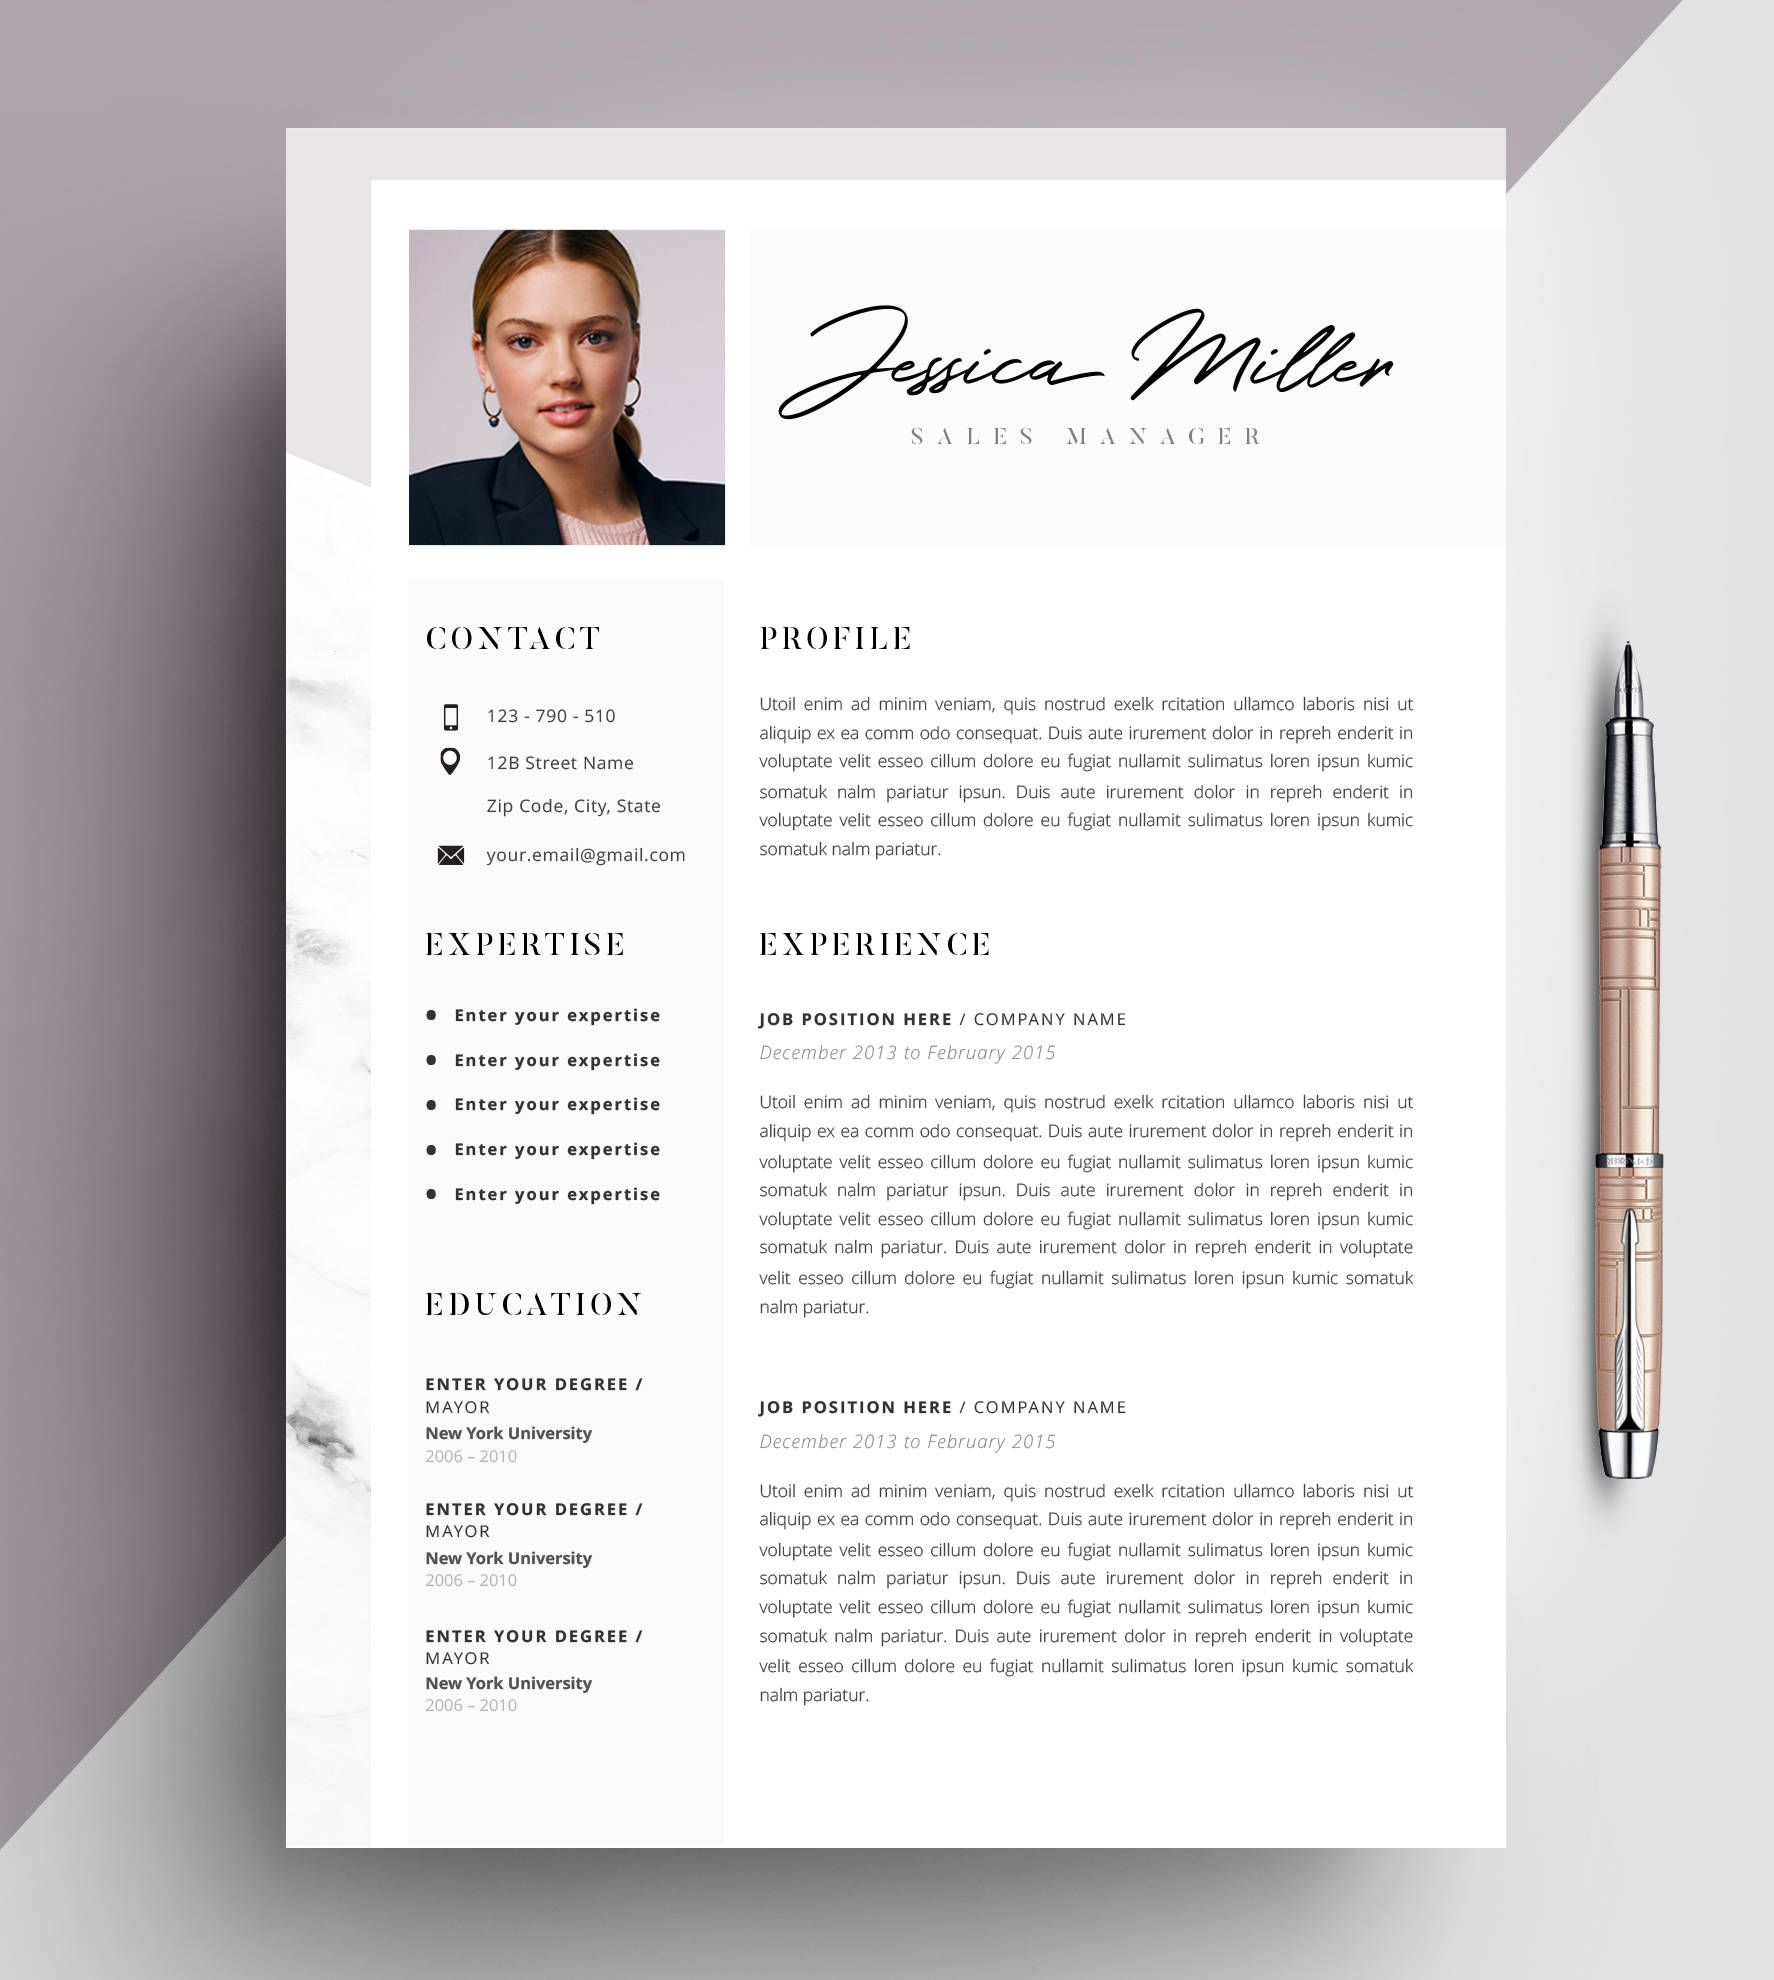 Professional Resume Template, CV Template Editable in MS